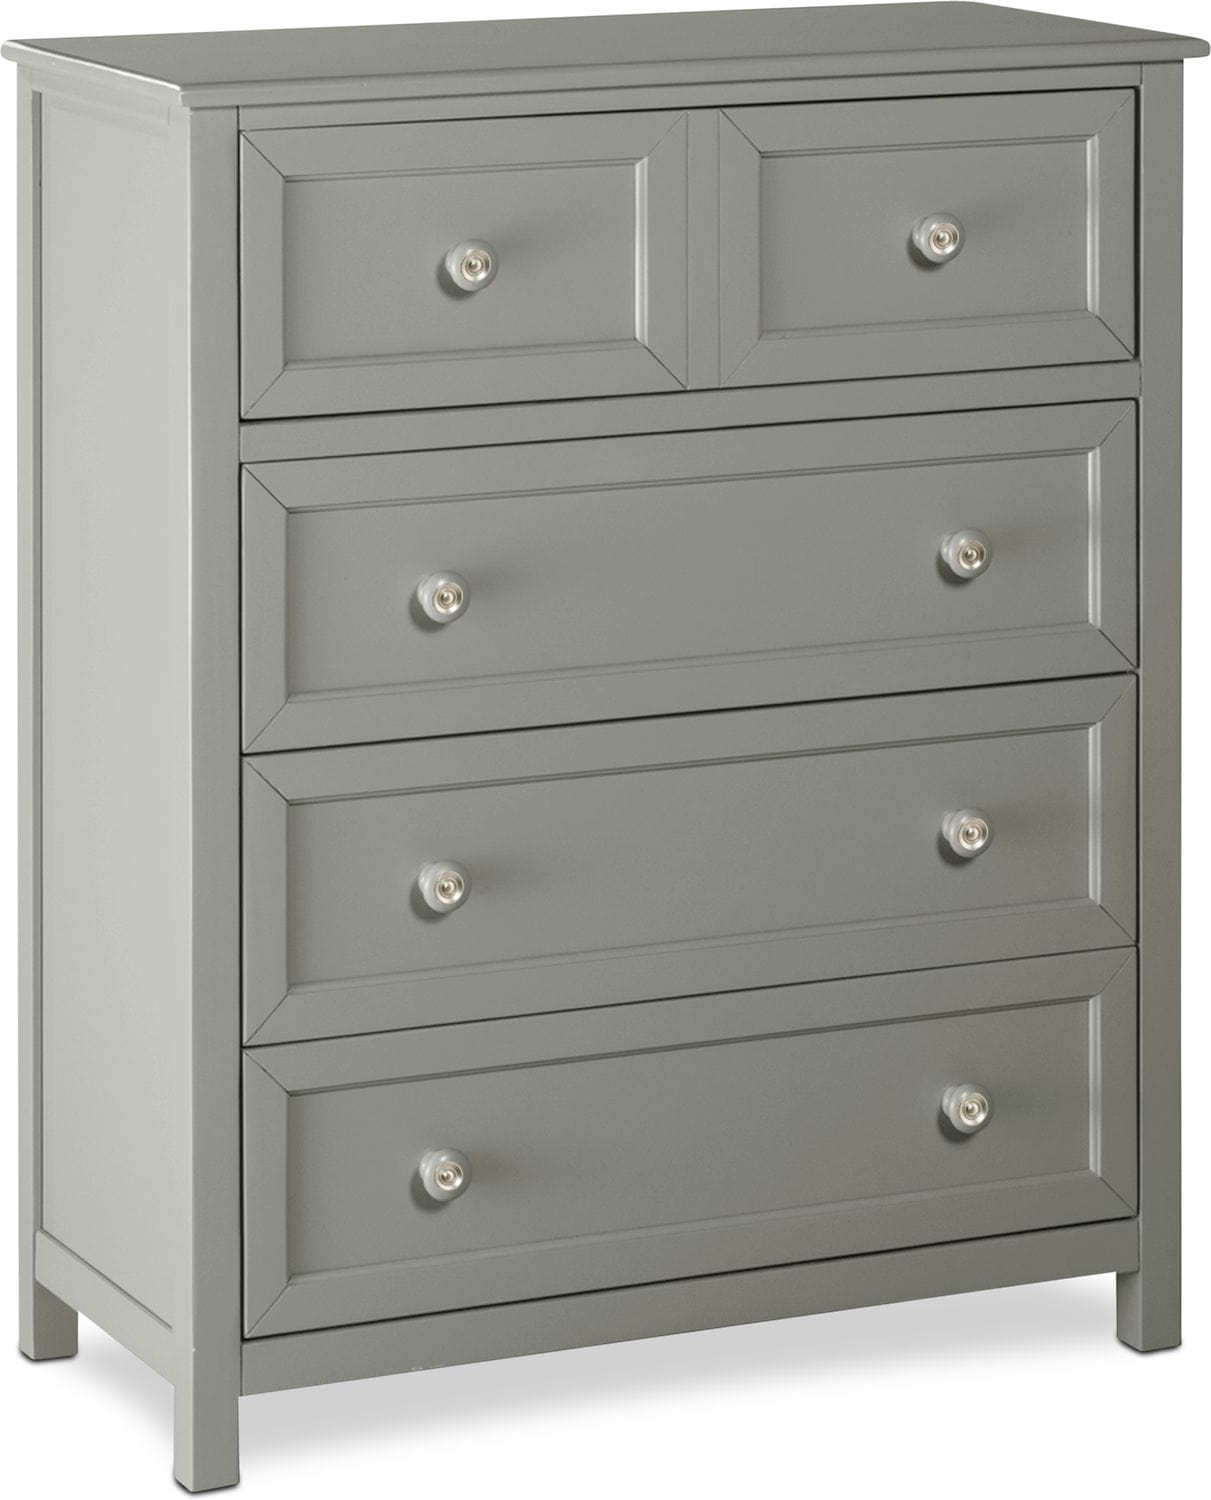 Bedroom Furniture - Flynn Chest